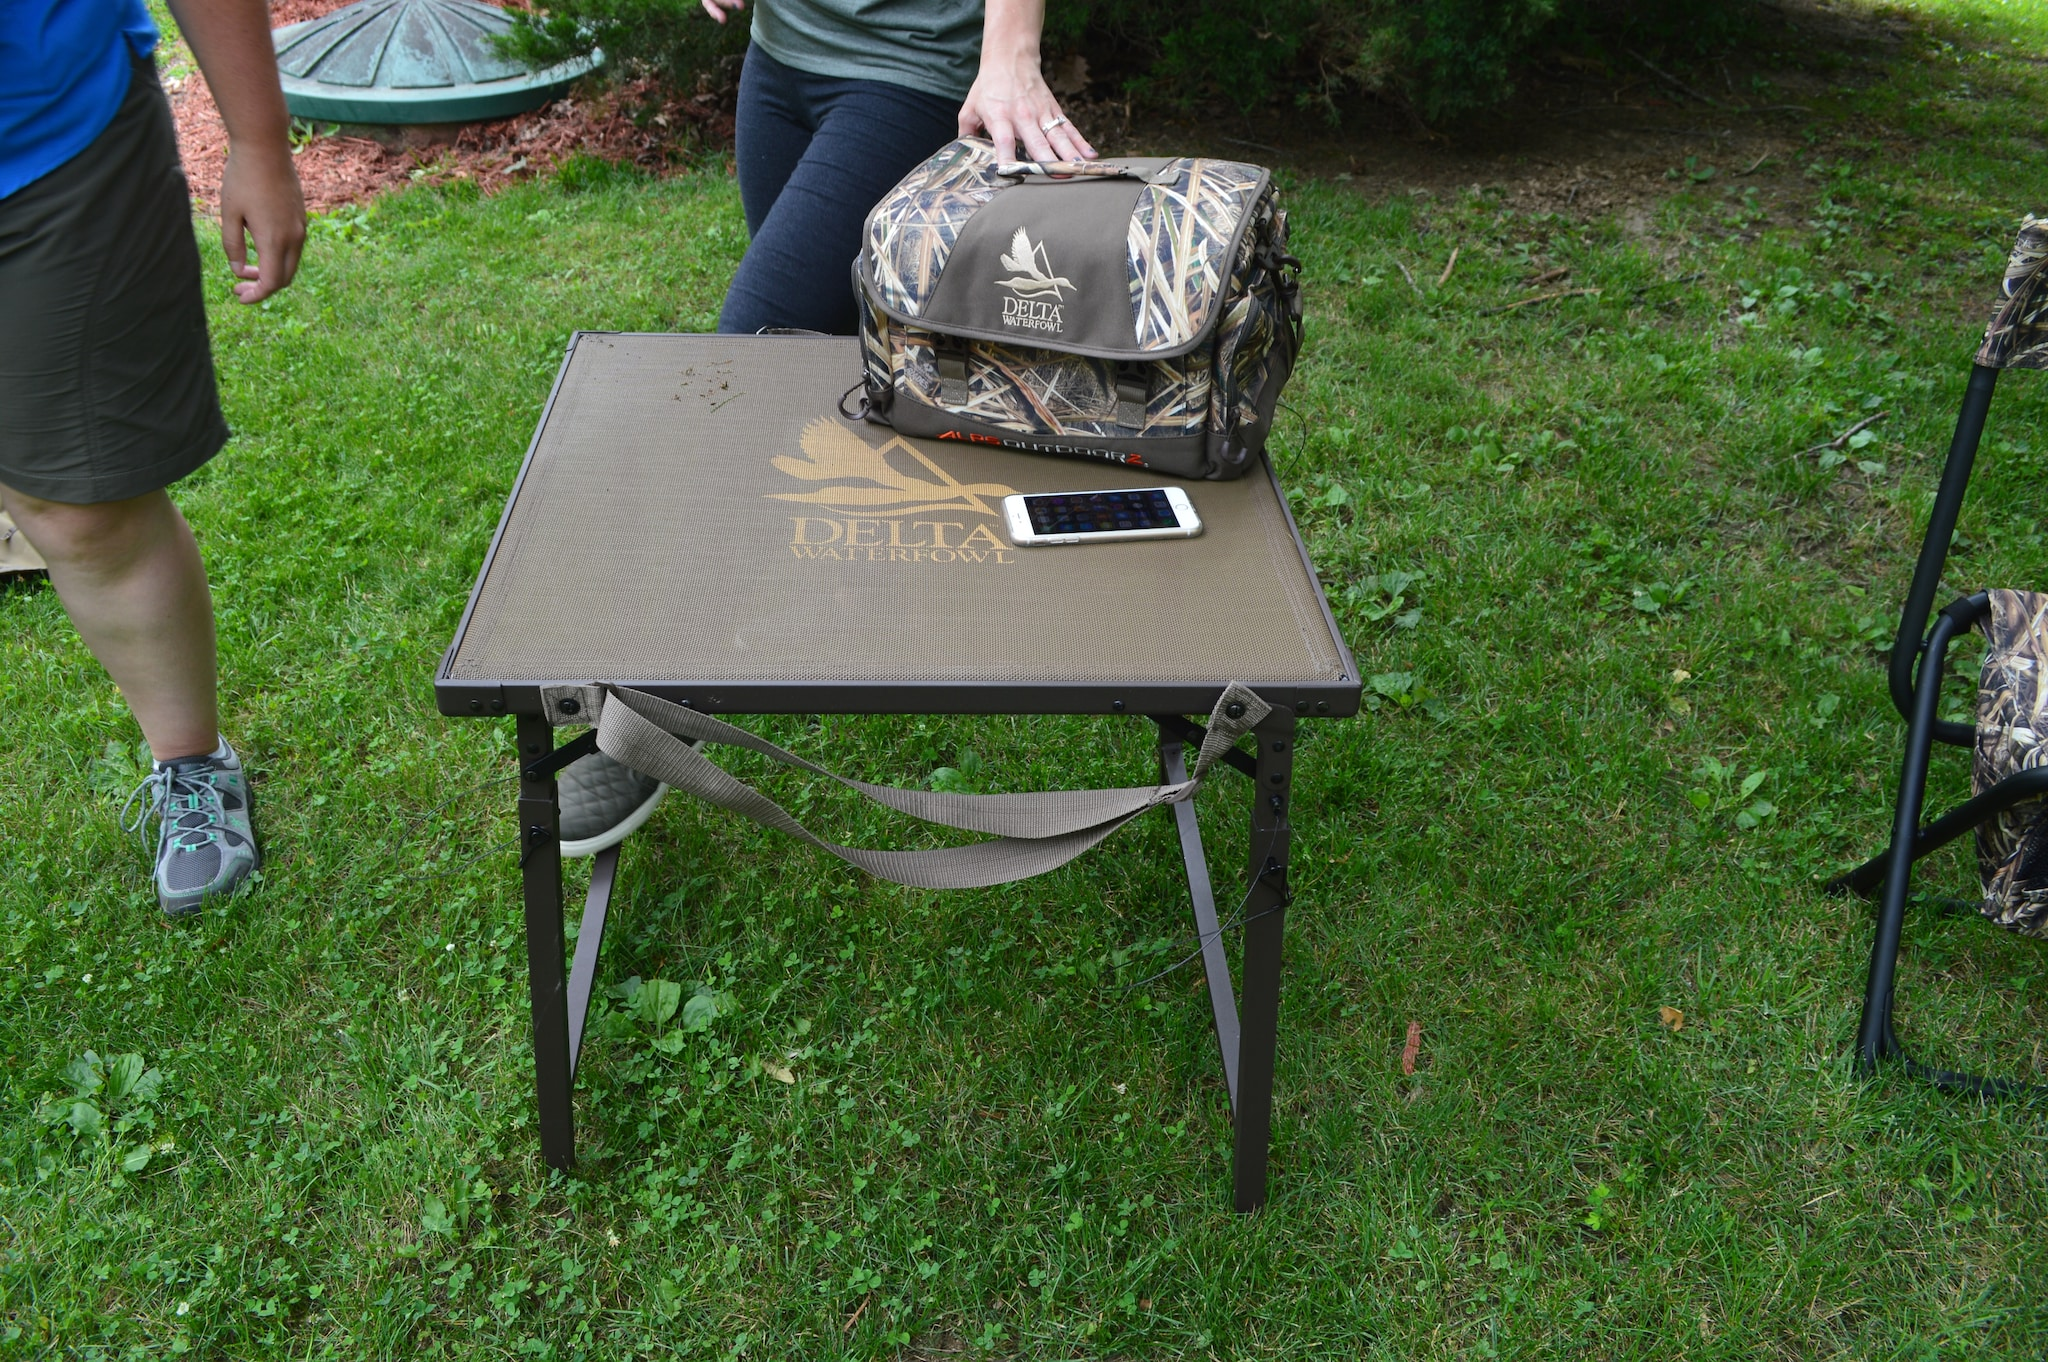 Delta Waterfowl is one of Alps brands, and they make gear for the serious goose and duck hunters. Shown here is their new Dog Stand. Its solid yet portable build is designed to keep your furry hunting companion out of the cold water and muck. The height is fully adjustable and the entire unit packs flat and is easy to carry with the integral shoulder strap. (Photo: Kristin Alberts)